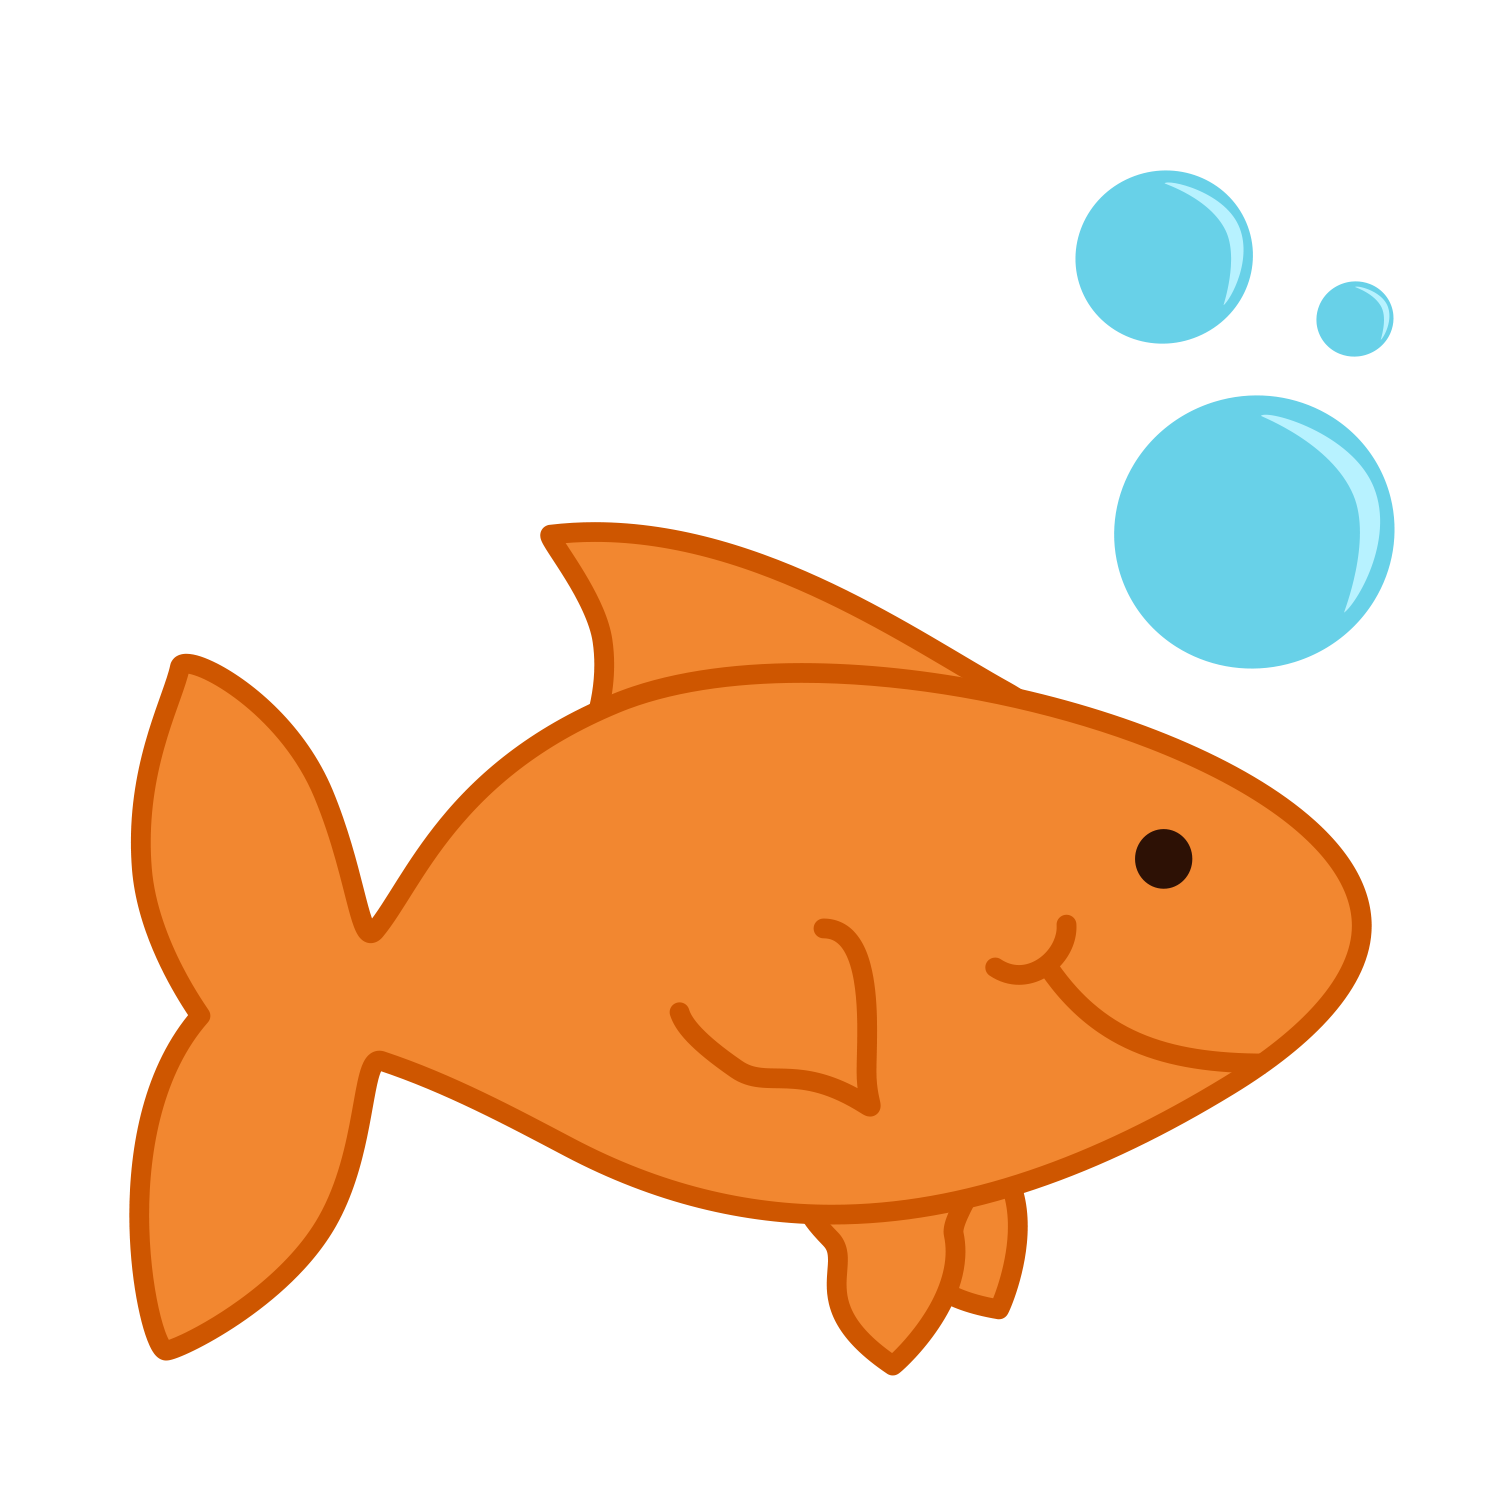 Gold fish clipart 2 » Clipart Station.